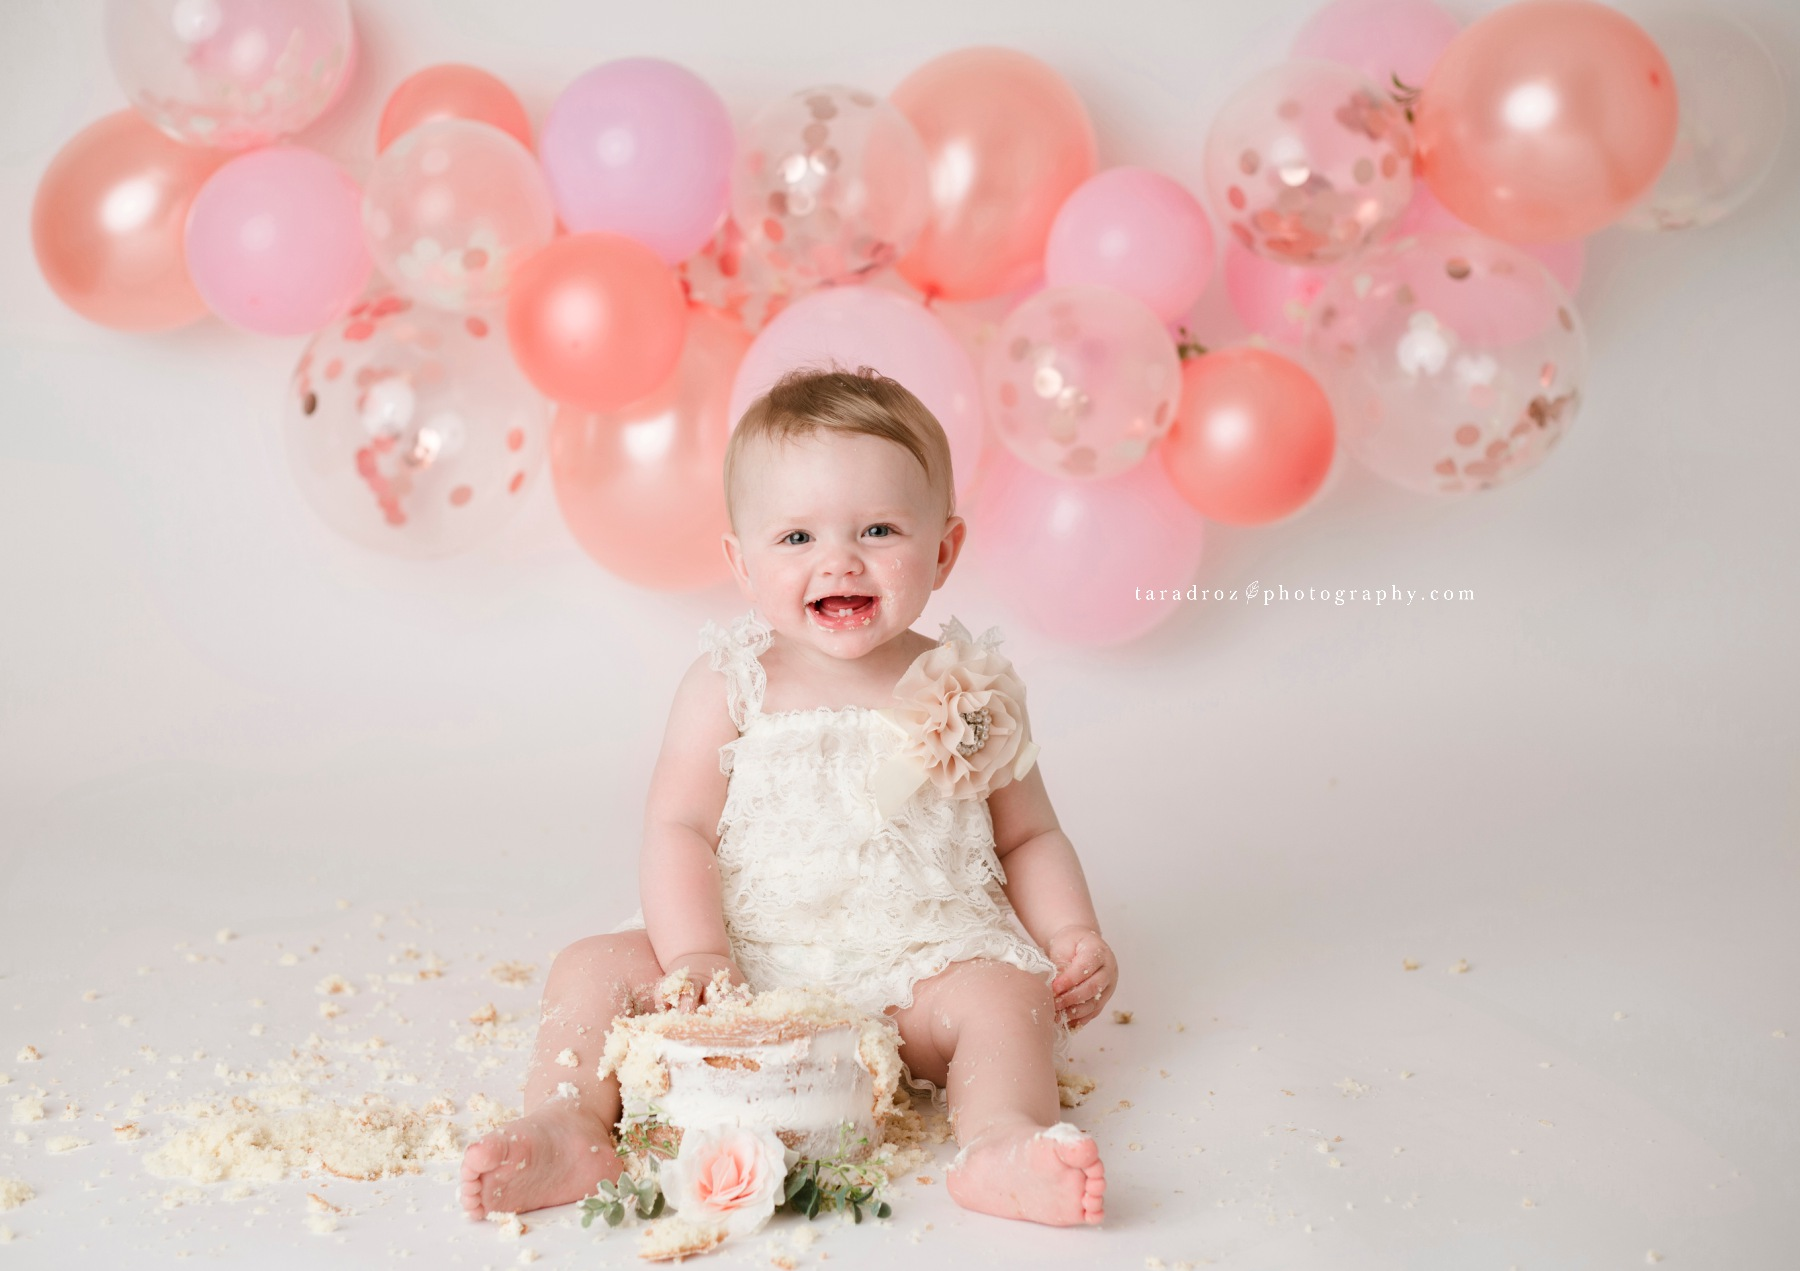 Elowyn One Year Cake Smash